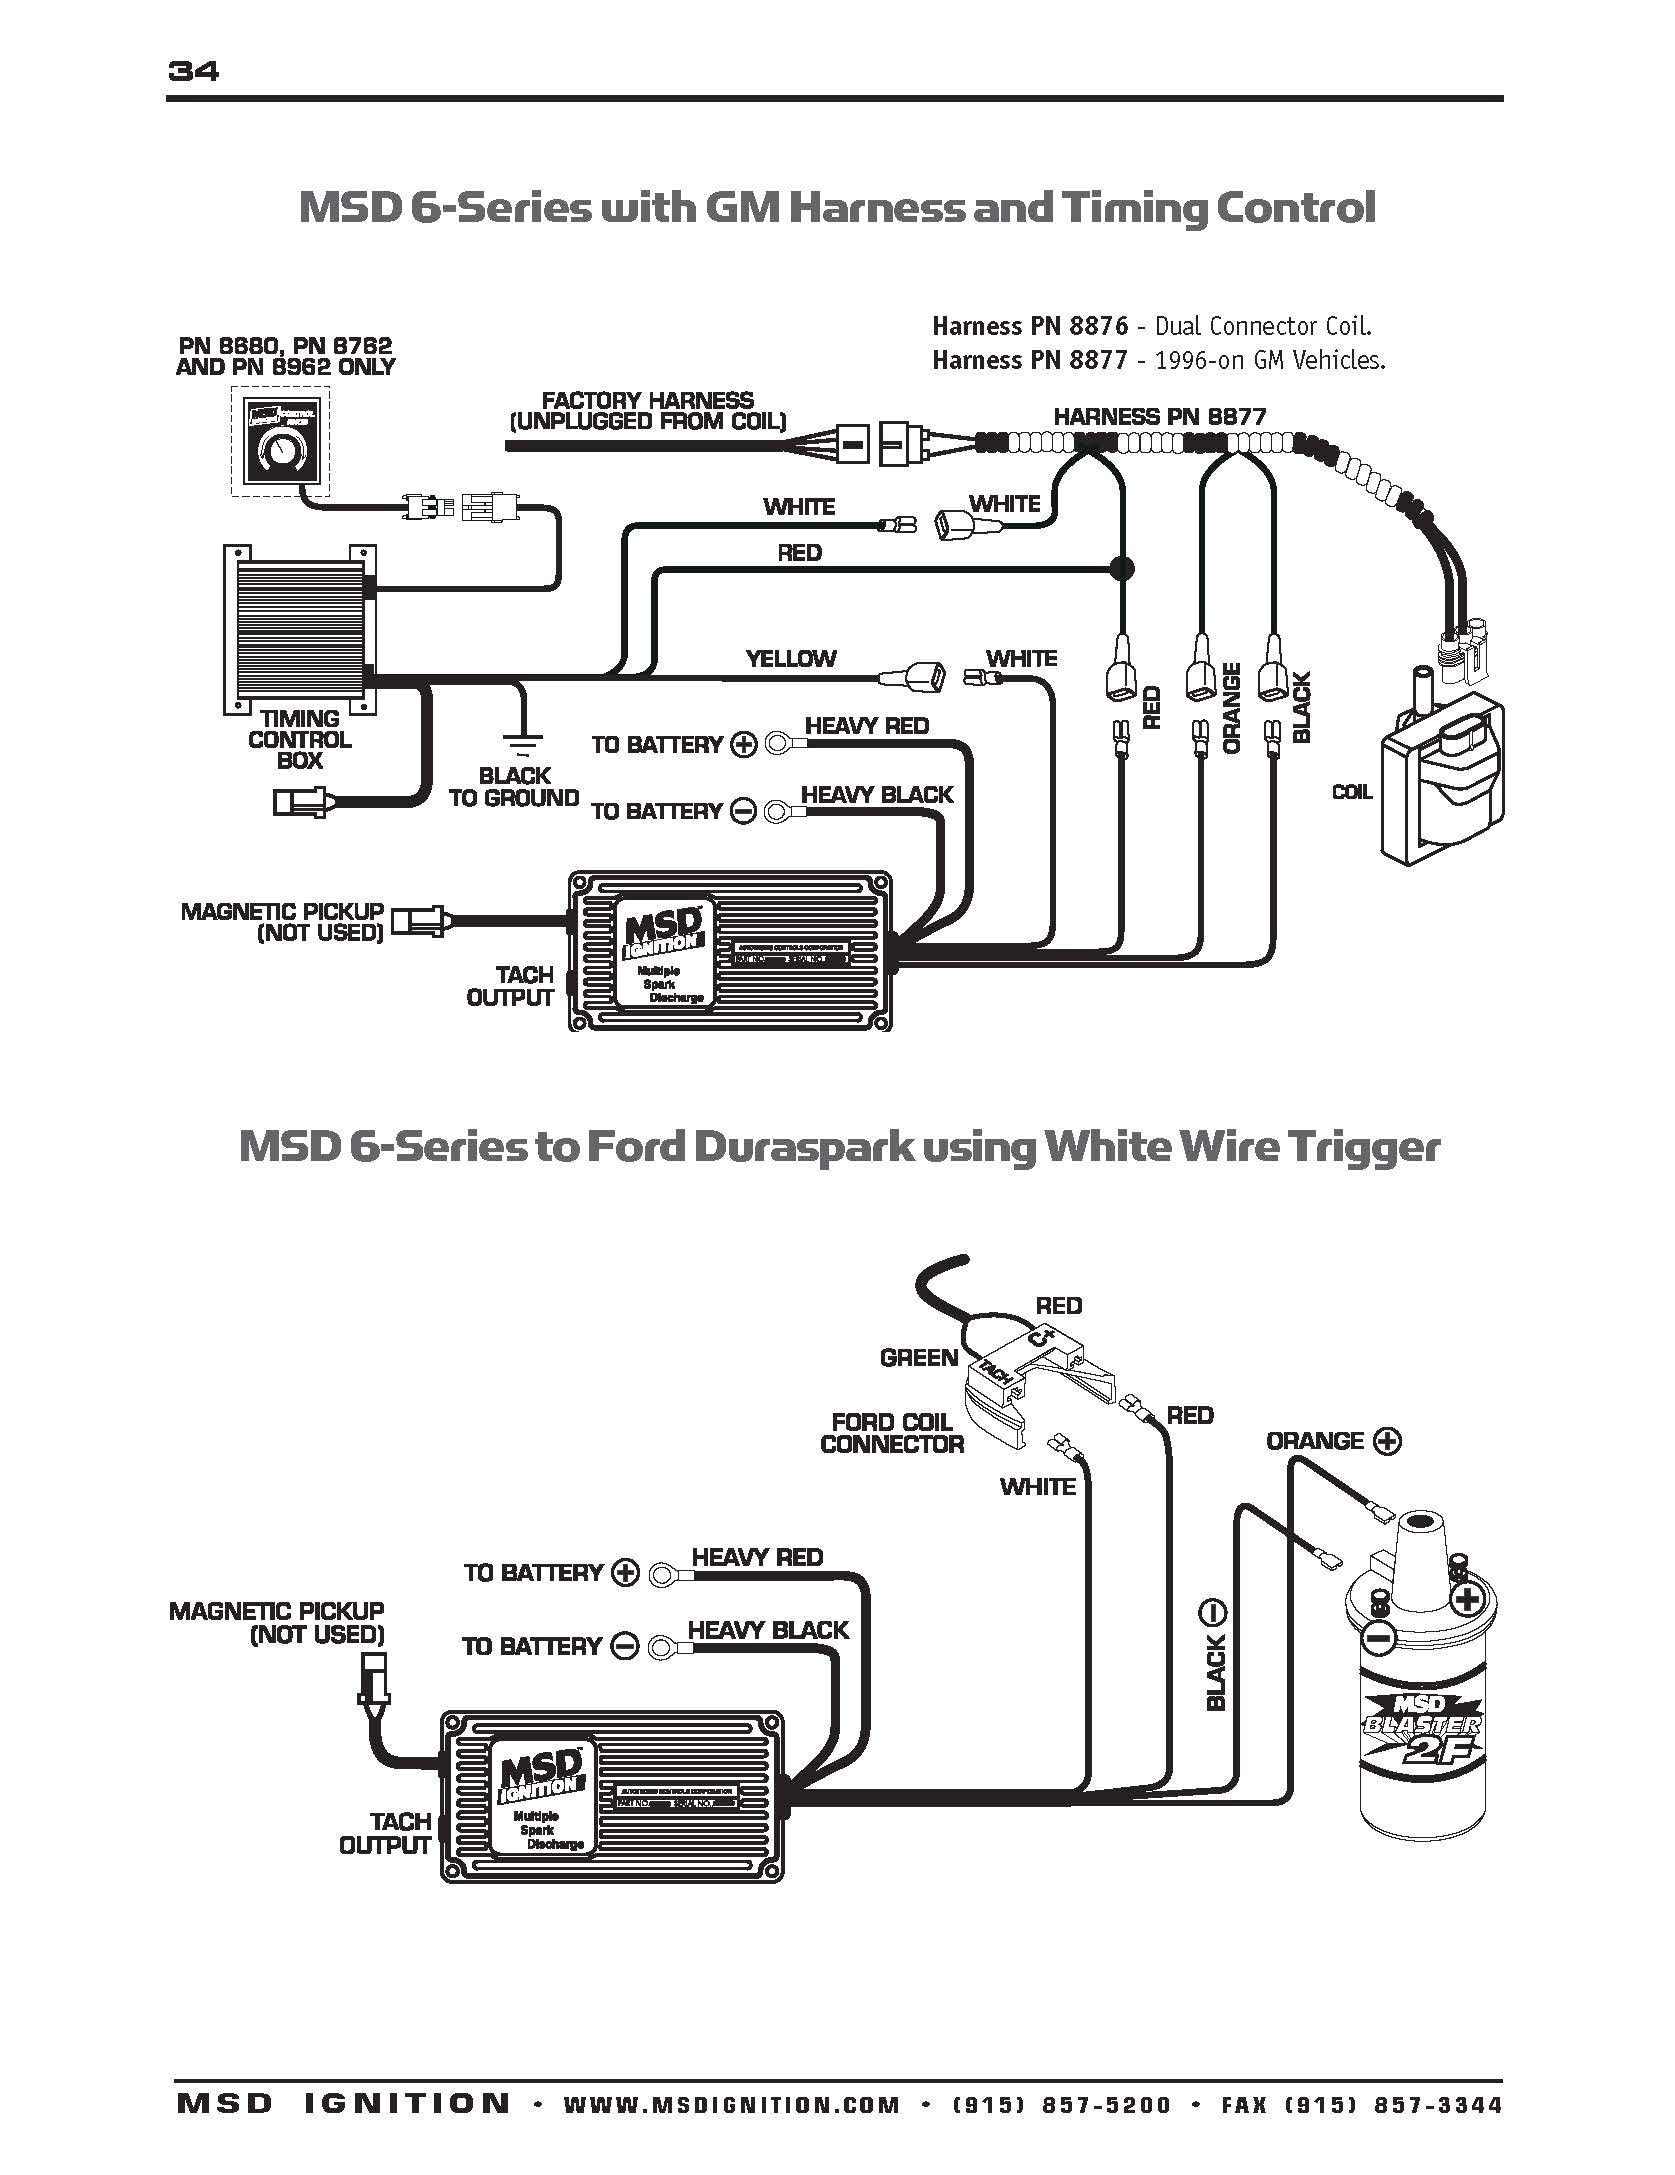 msd ignition 1978 ford 460 wiring diagram wiring diagram toolbox msd ignition wiring diagram ford msd ignition diagram